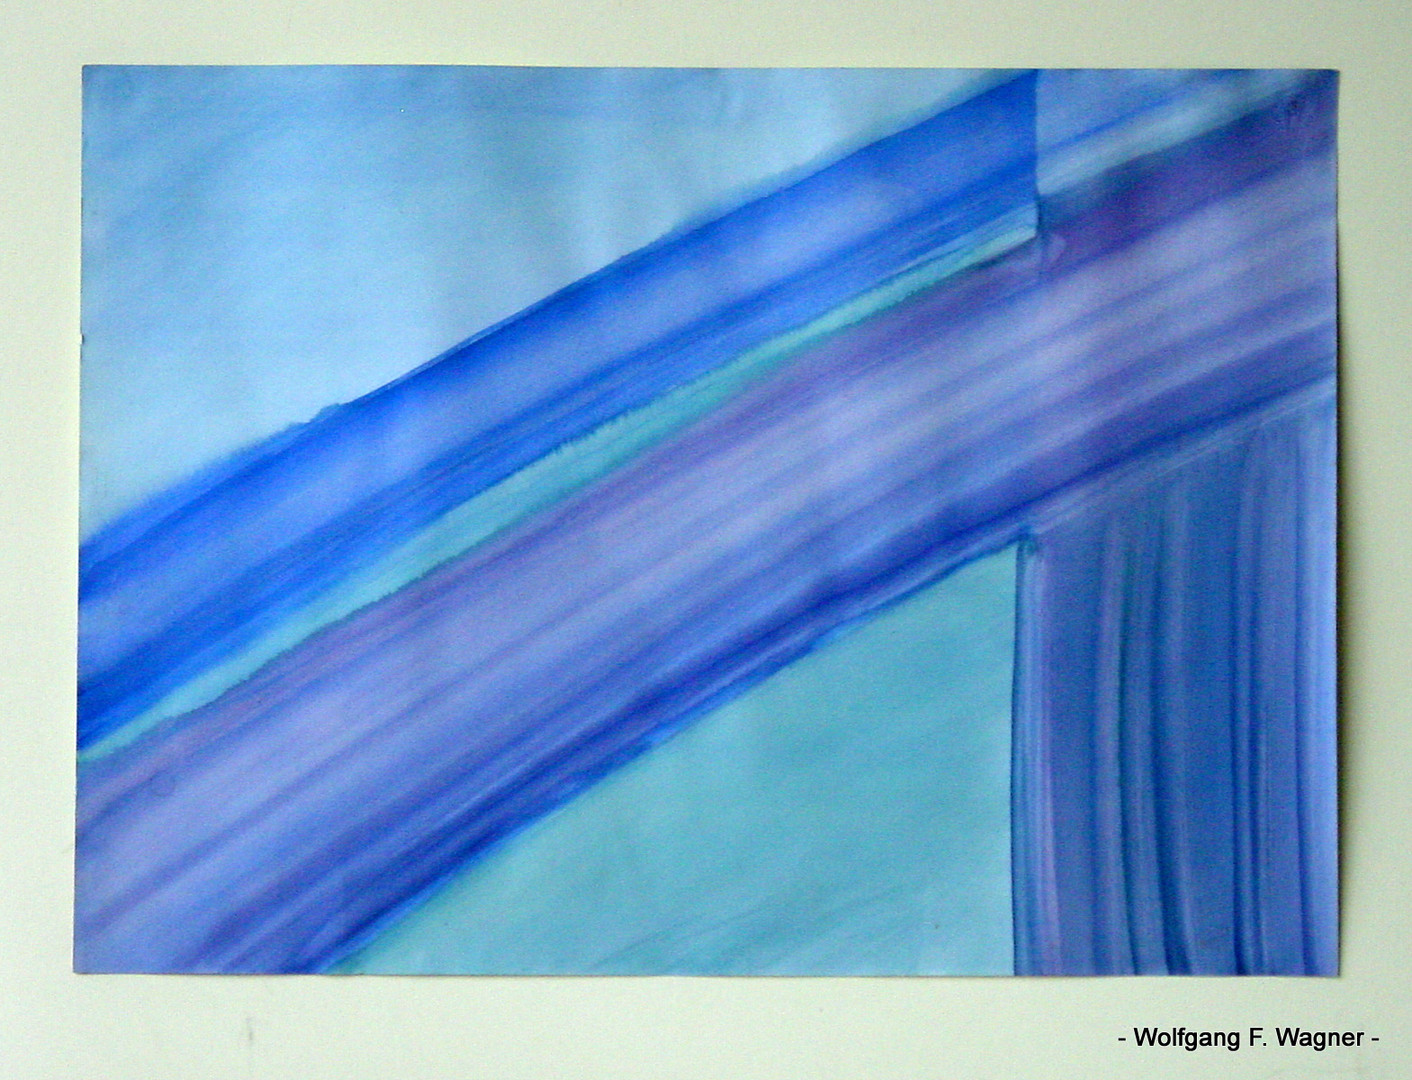 - Aquarell - Konstruktives nur in Blau - 1974 -